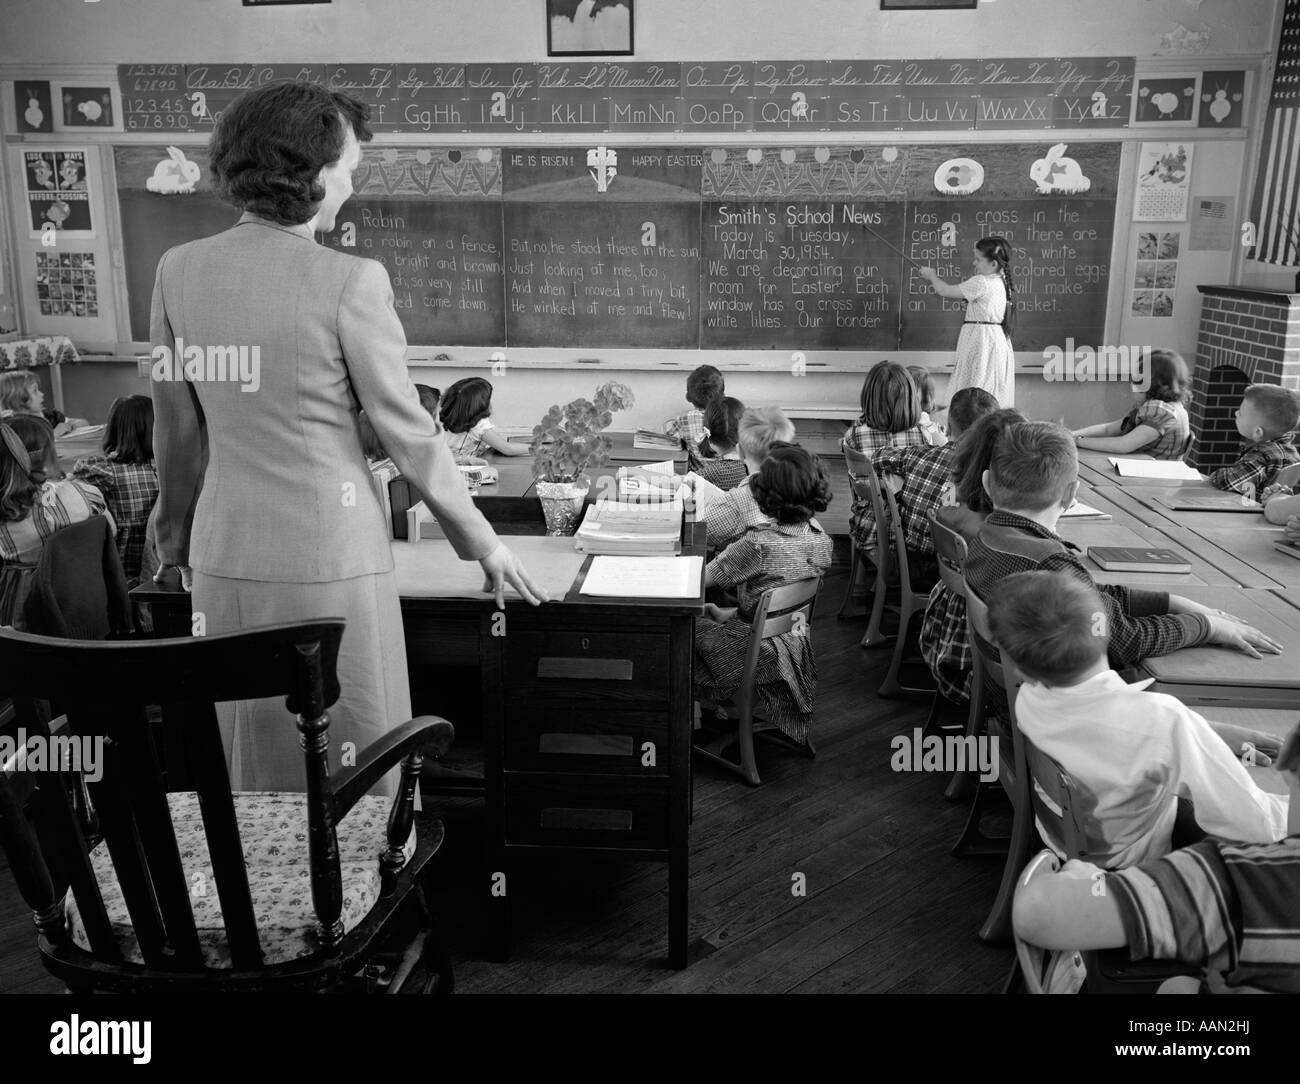 1950s GIRL AT FRONT OF CLASSROOM USING POINTER TO READ THROUGH SCHOOL NEWS ON CHALKBOARD WITH TEACHER STANDING AT Stock Photo